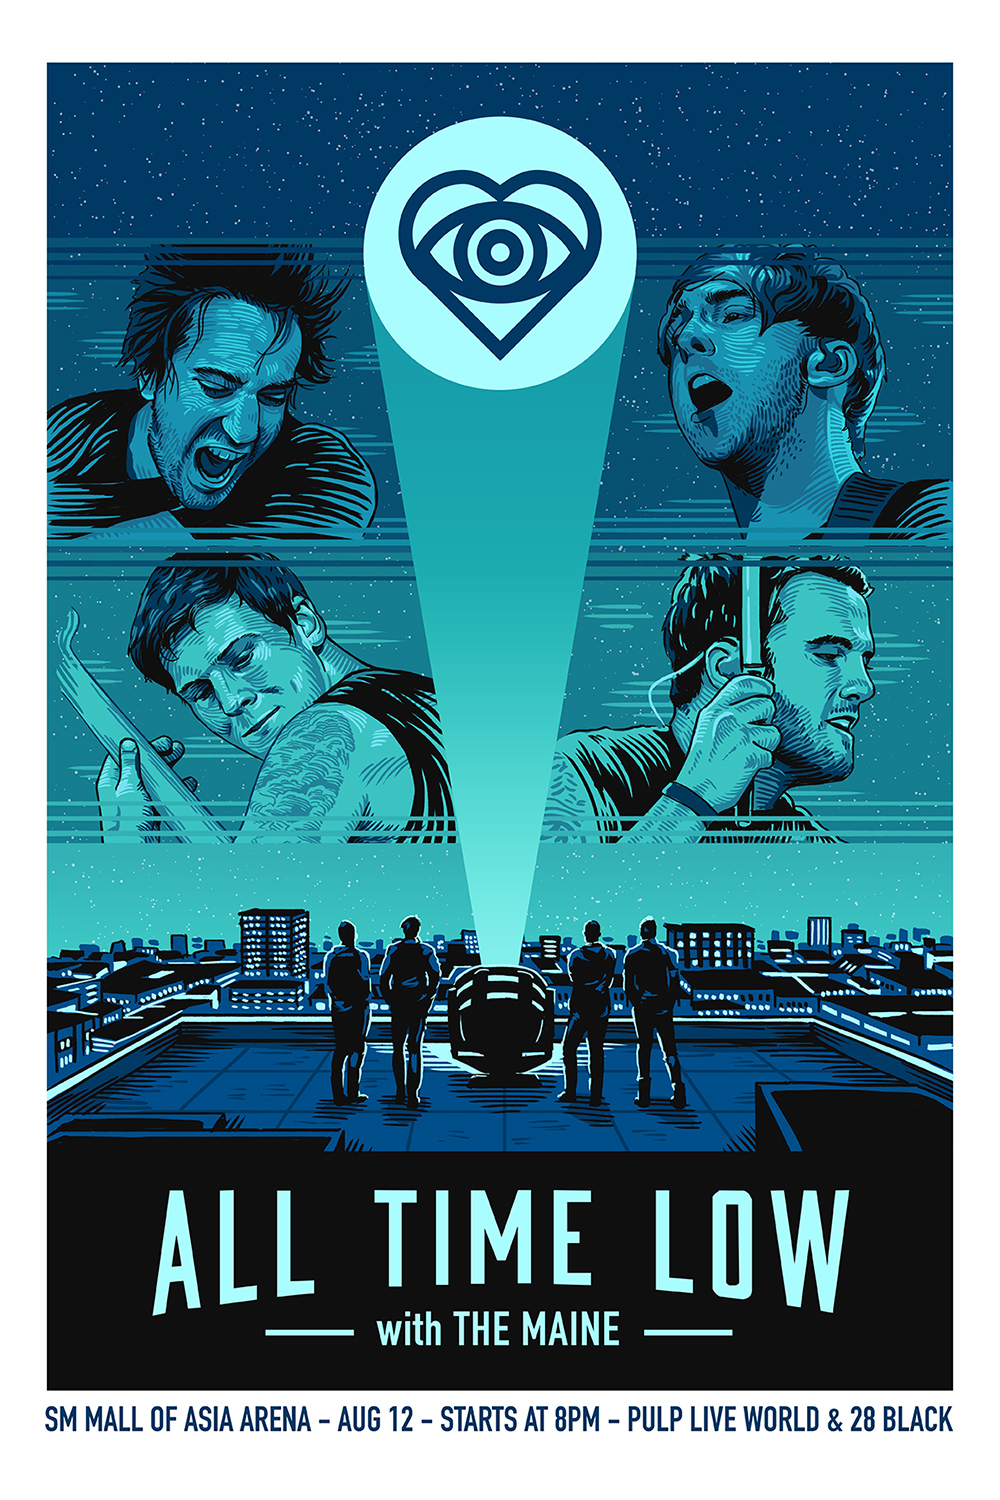 all time low live in manila 2015 on behance